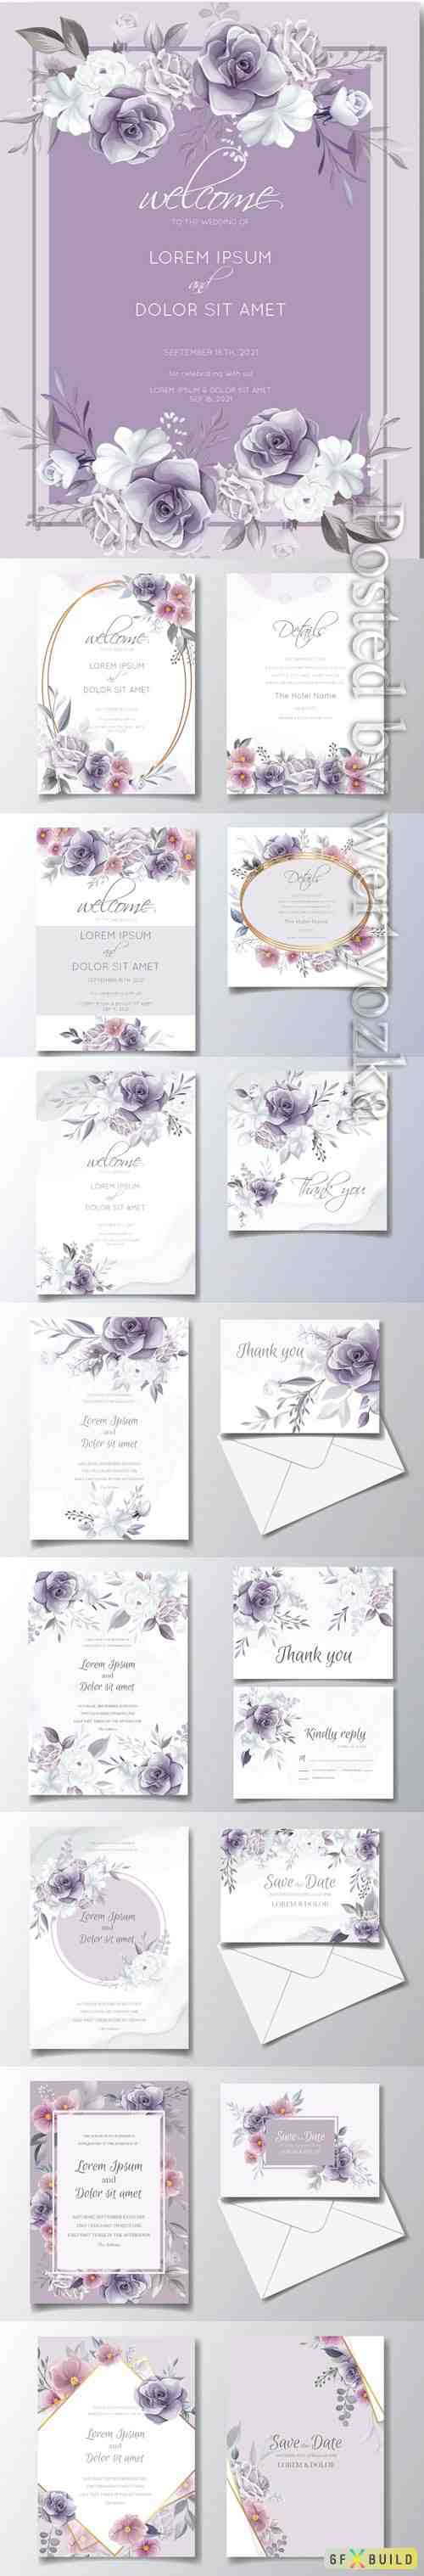 Romantic wedding invitation with beautiful rose and cosmos flower watercolor background